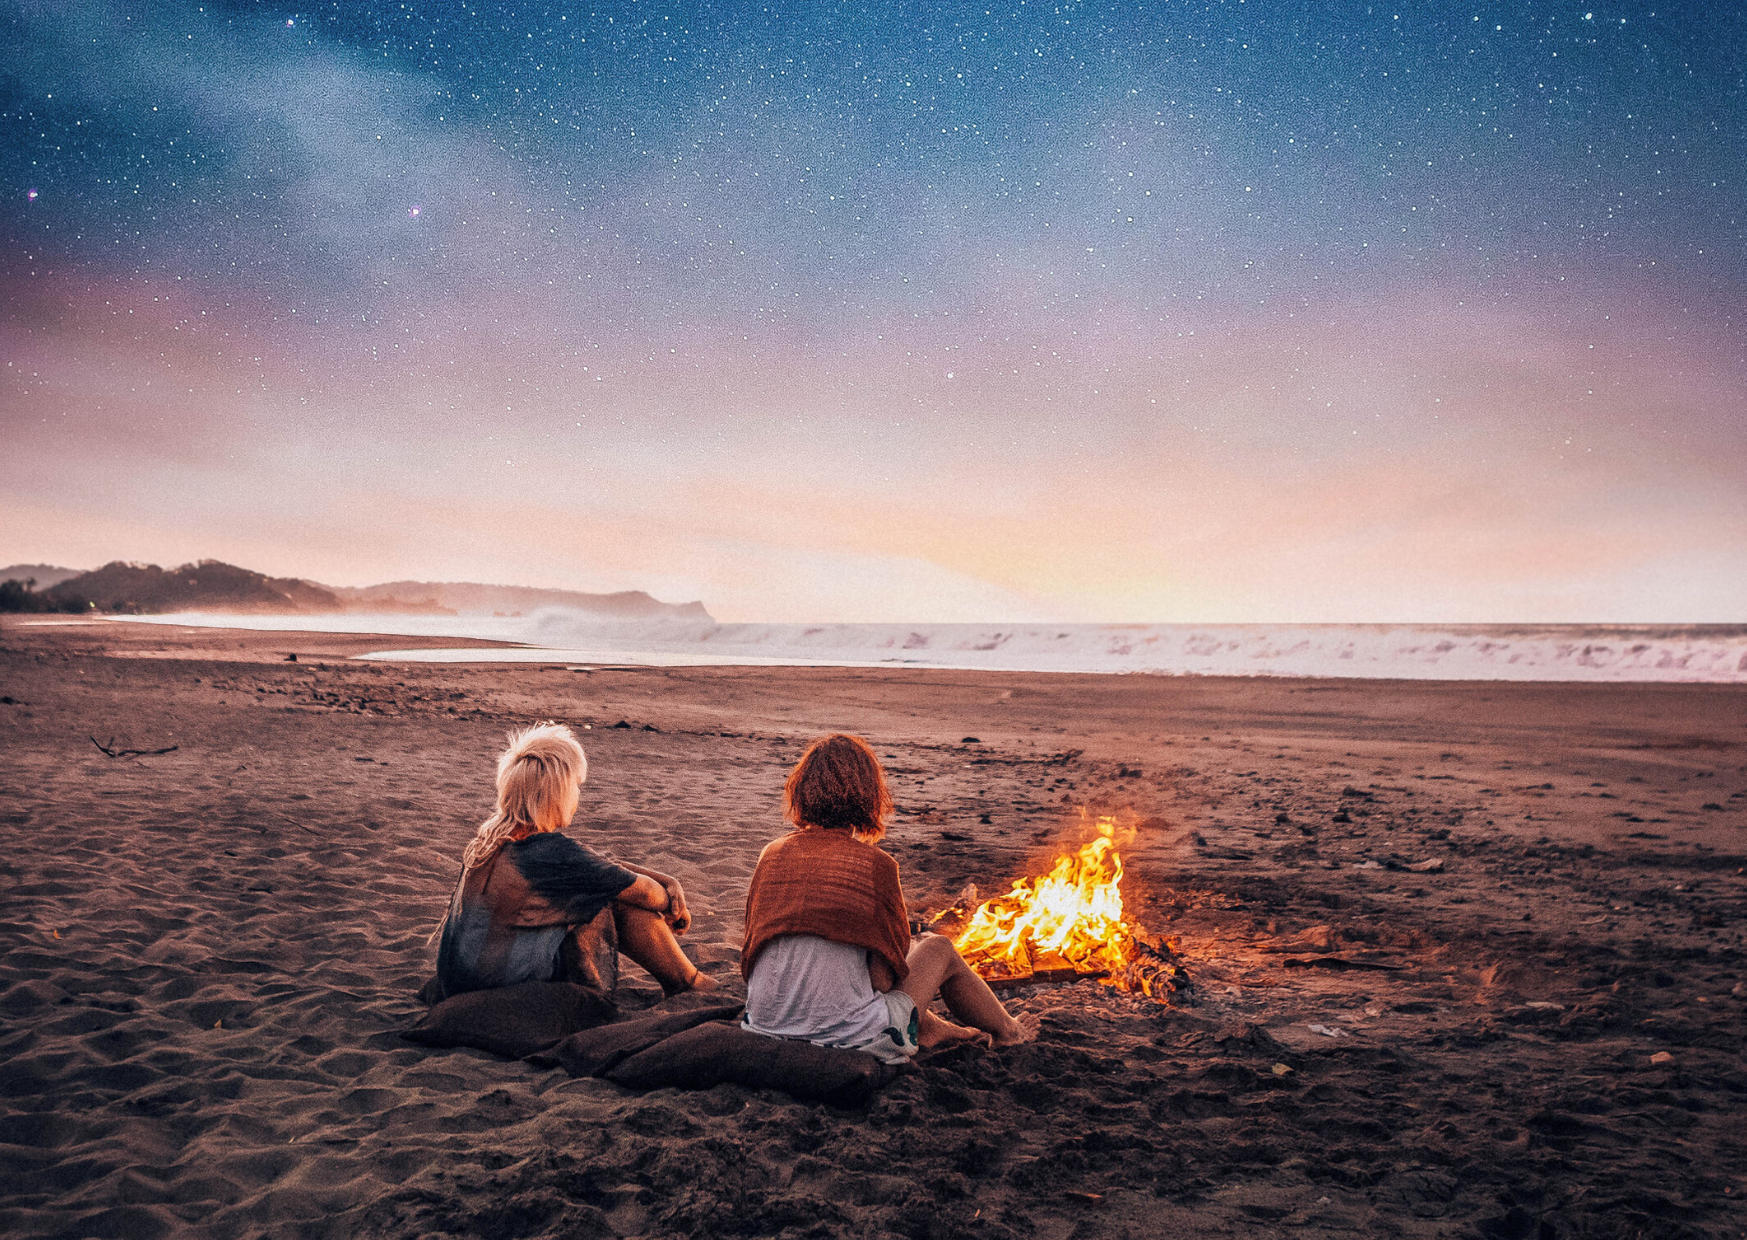 two girls sitting next to bonfire by the beach